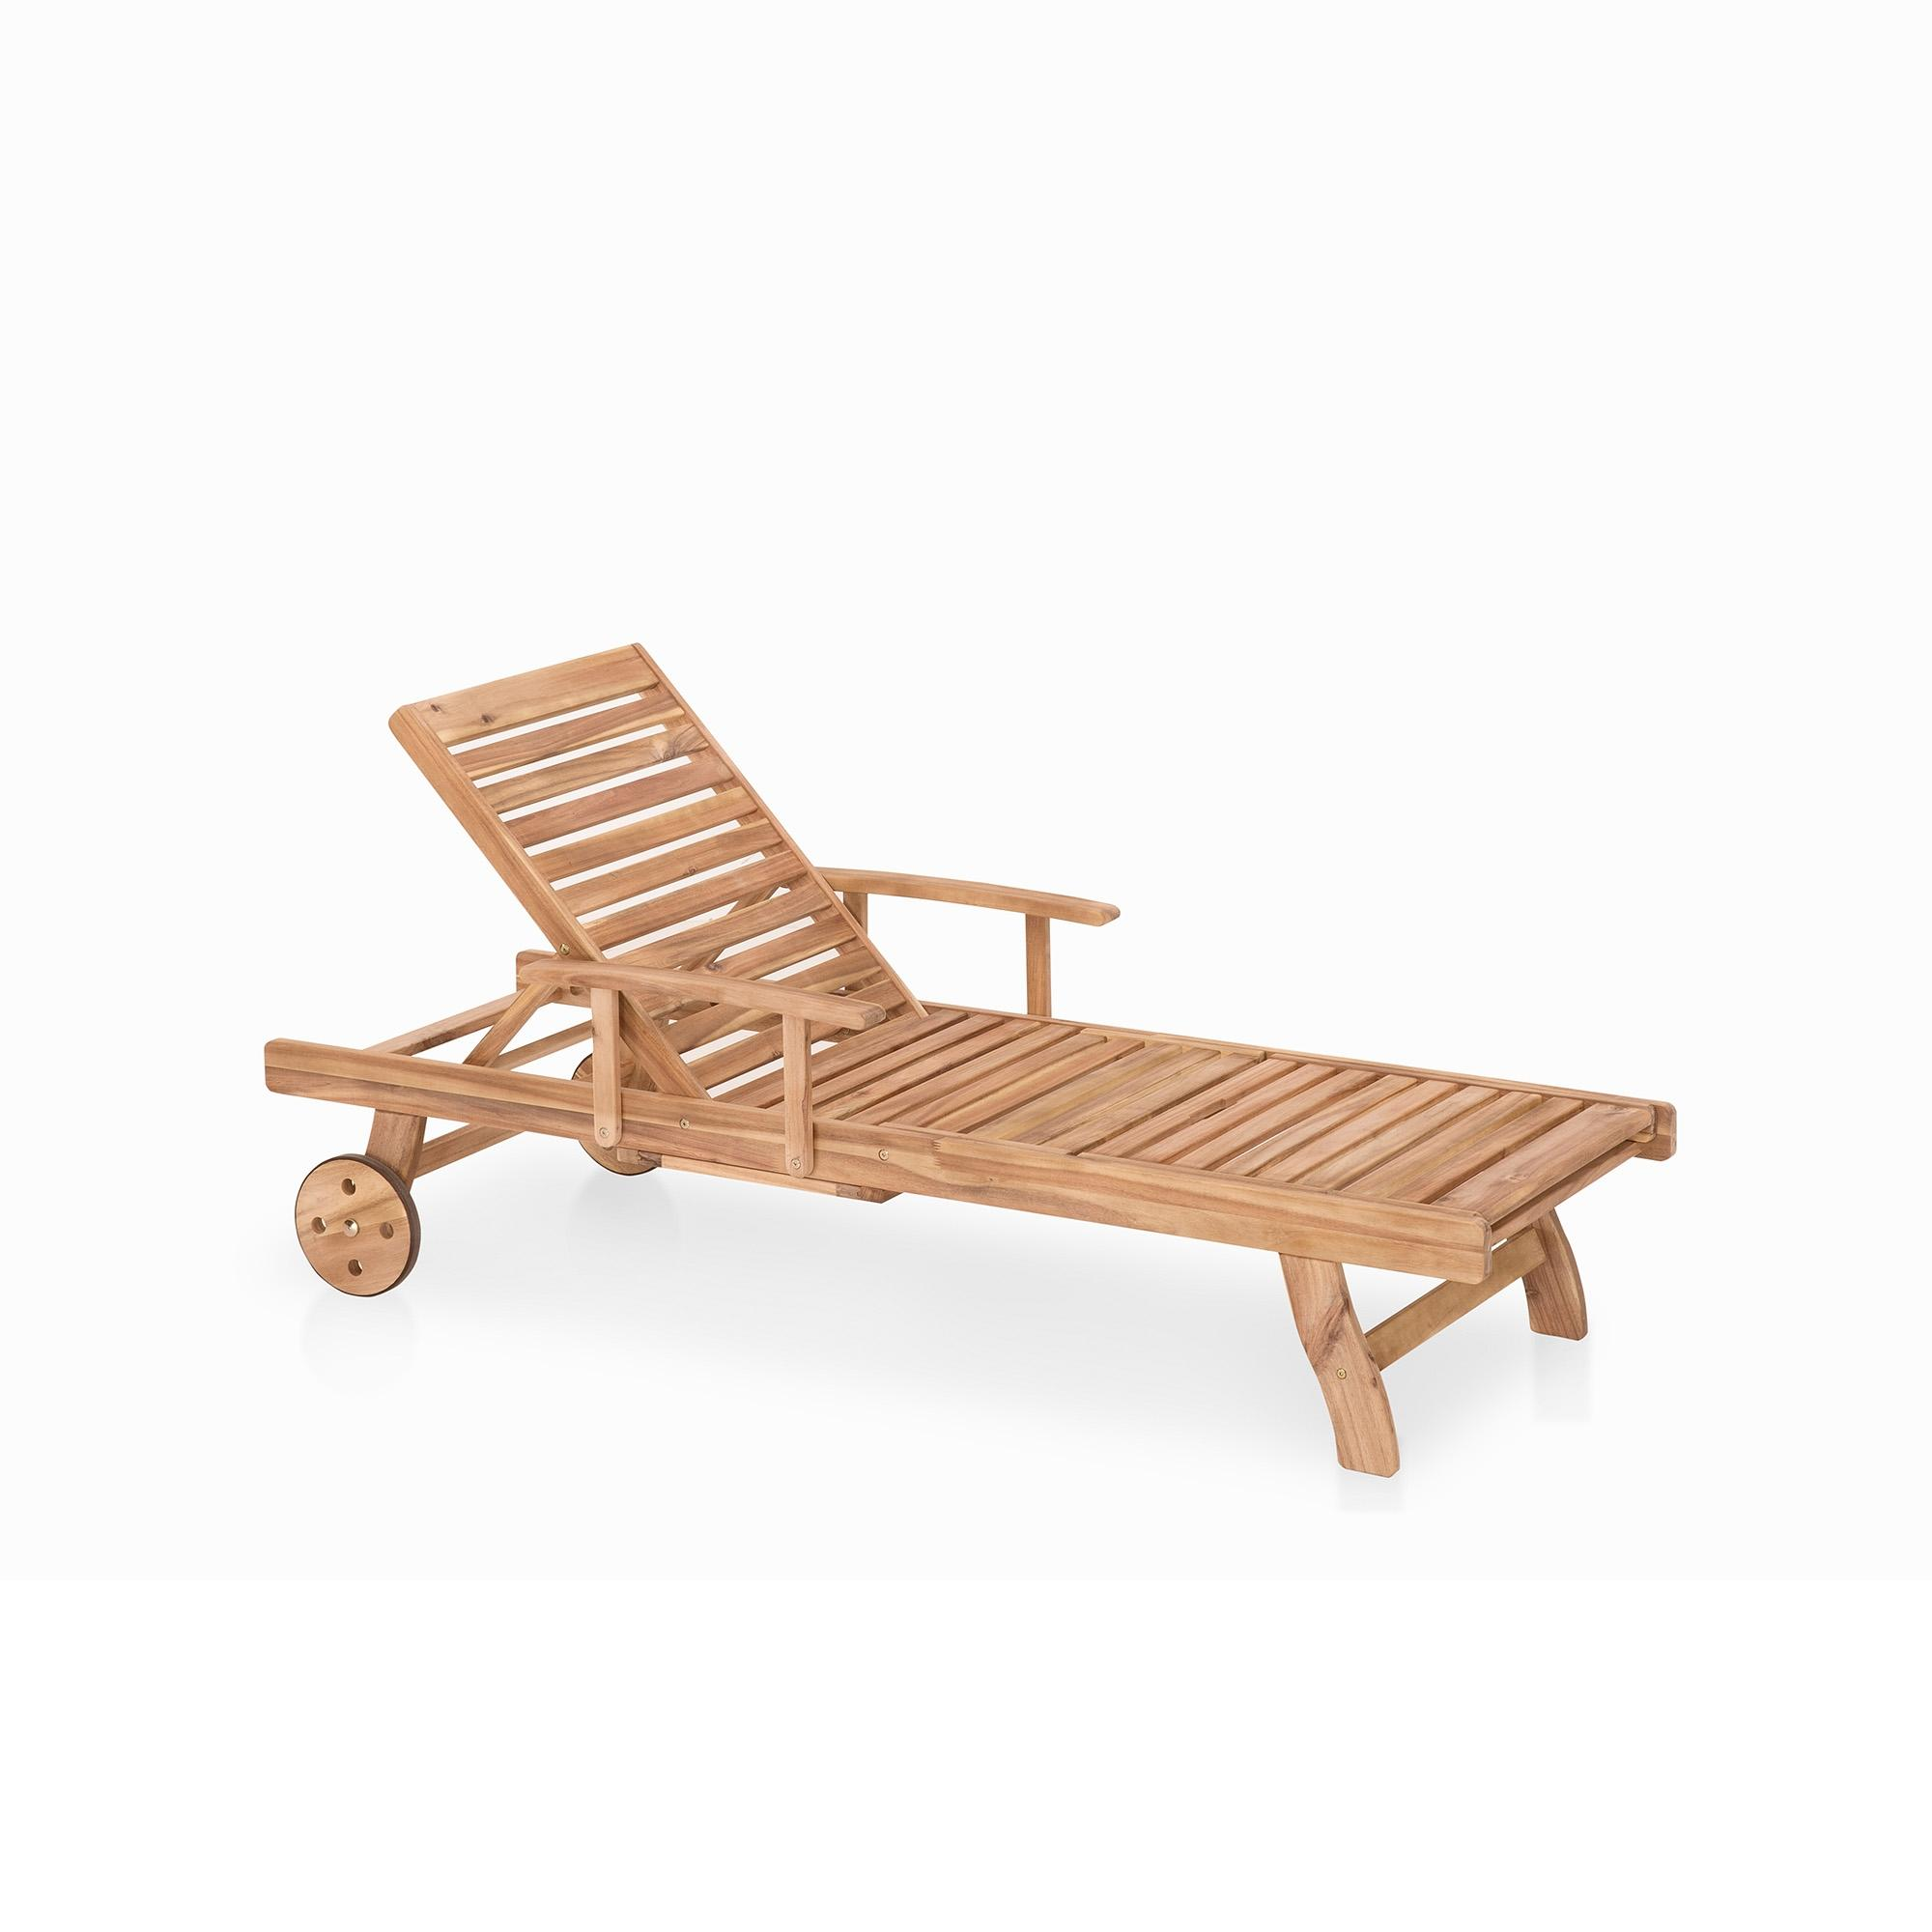 meubles en bois teck chaise longue de jardin beliani. Black Bedroom Furniture Sets. Home Design Ideas